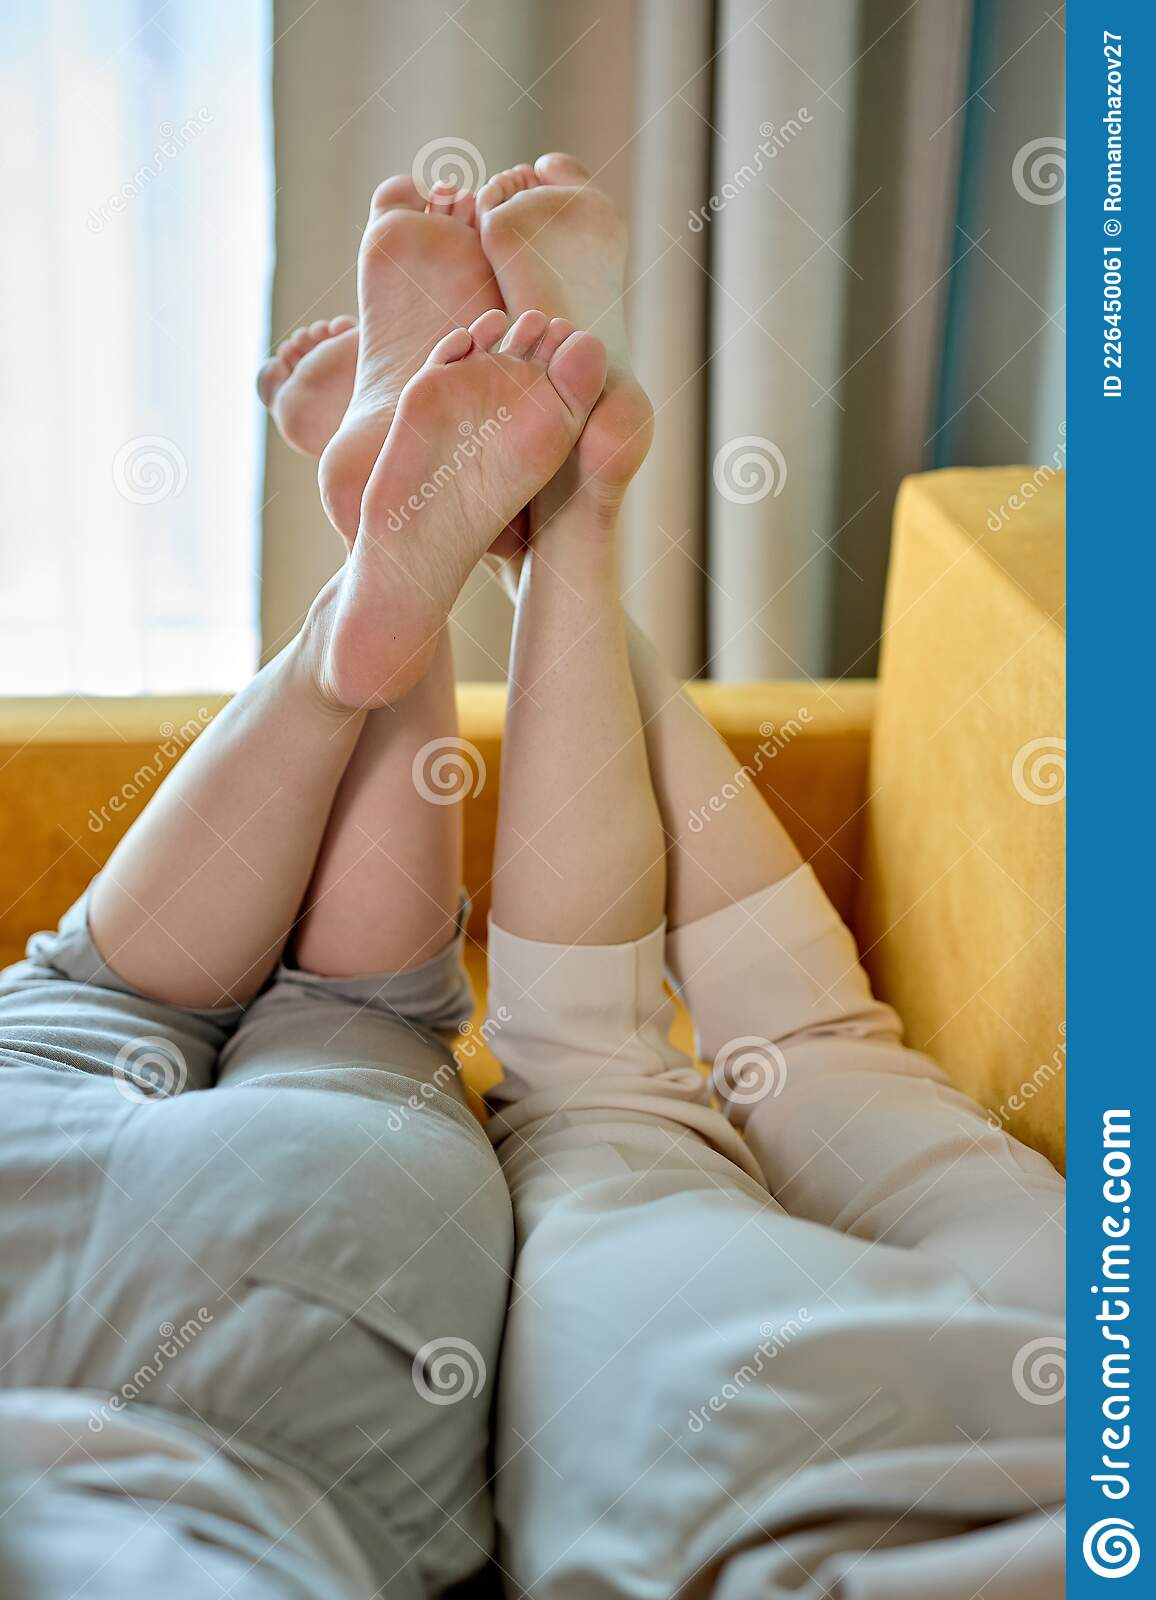 Lesbian Foot Pictures photo 15